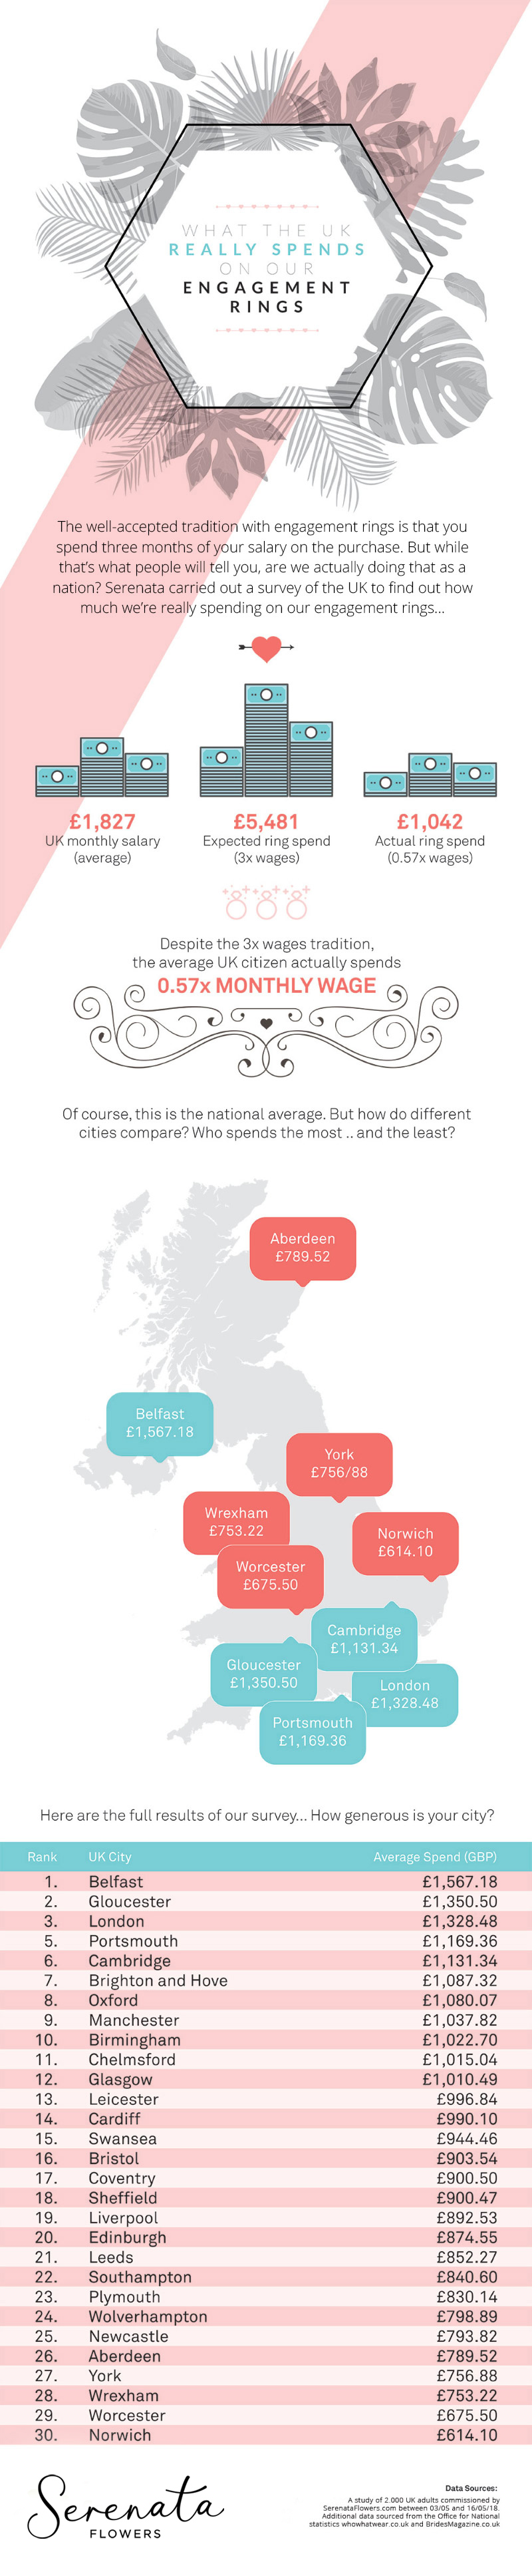 engagement rings infographic